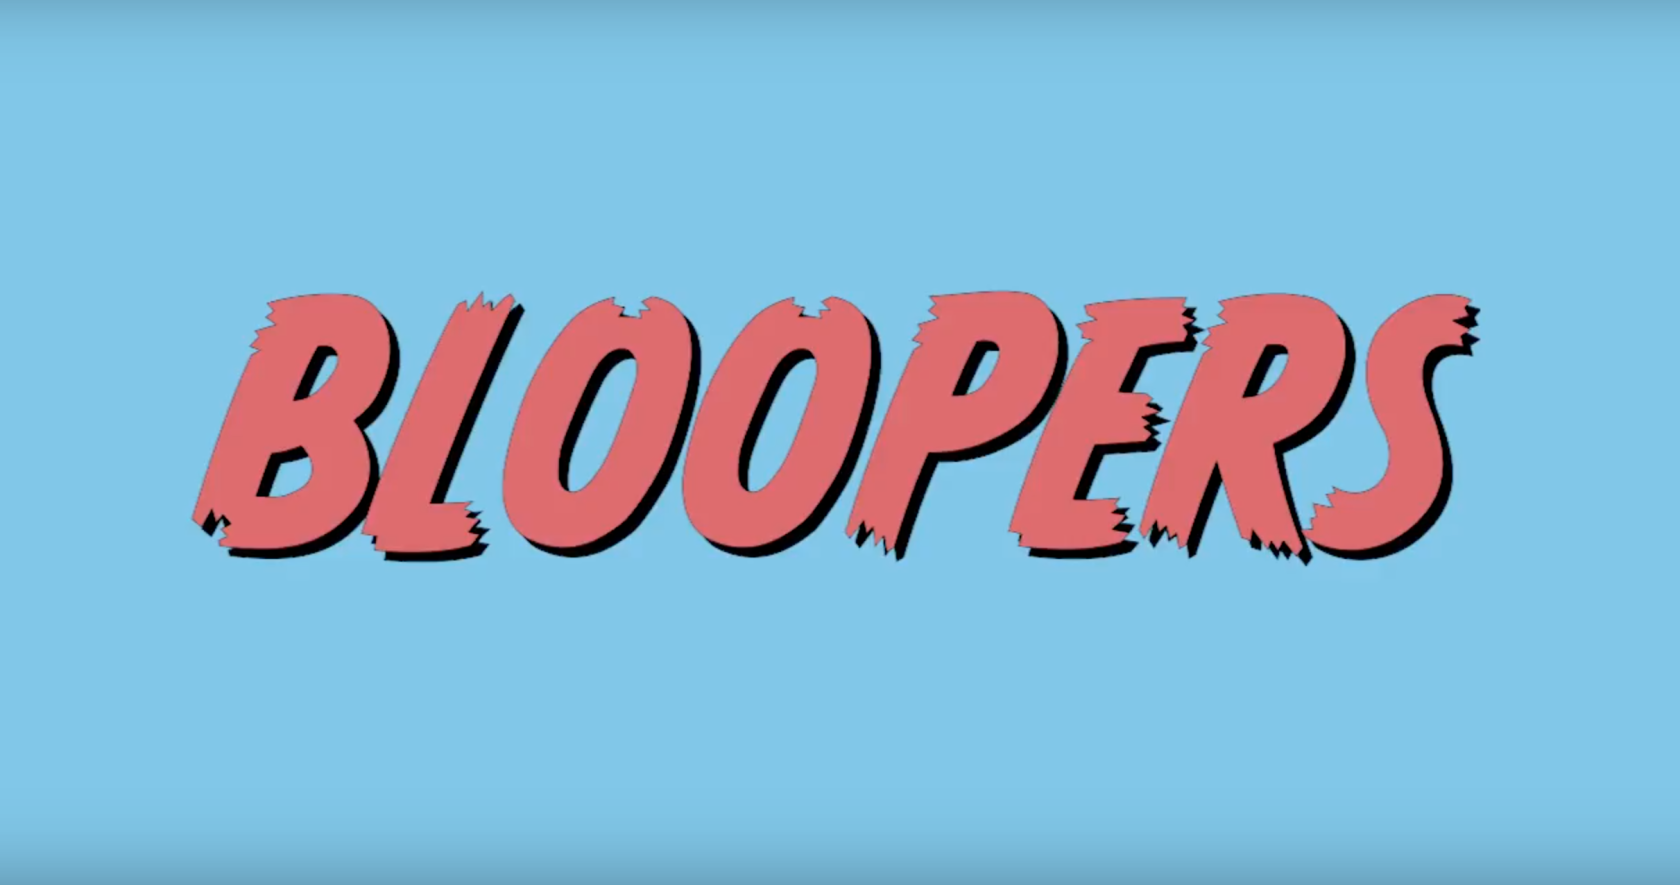 HEDNA LA 2019 |  Bloopers & Outtakes